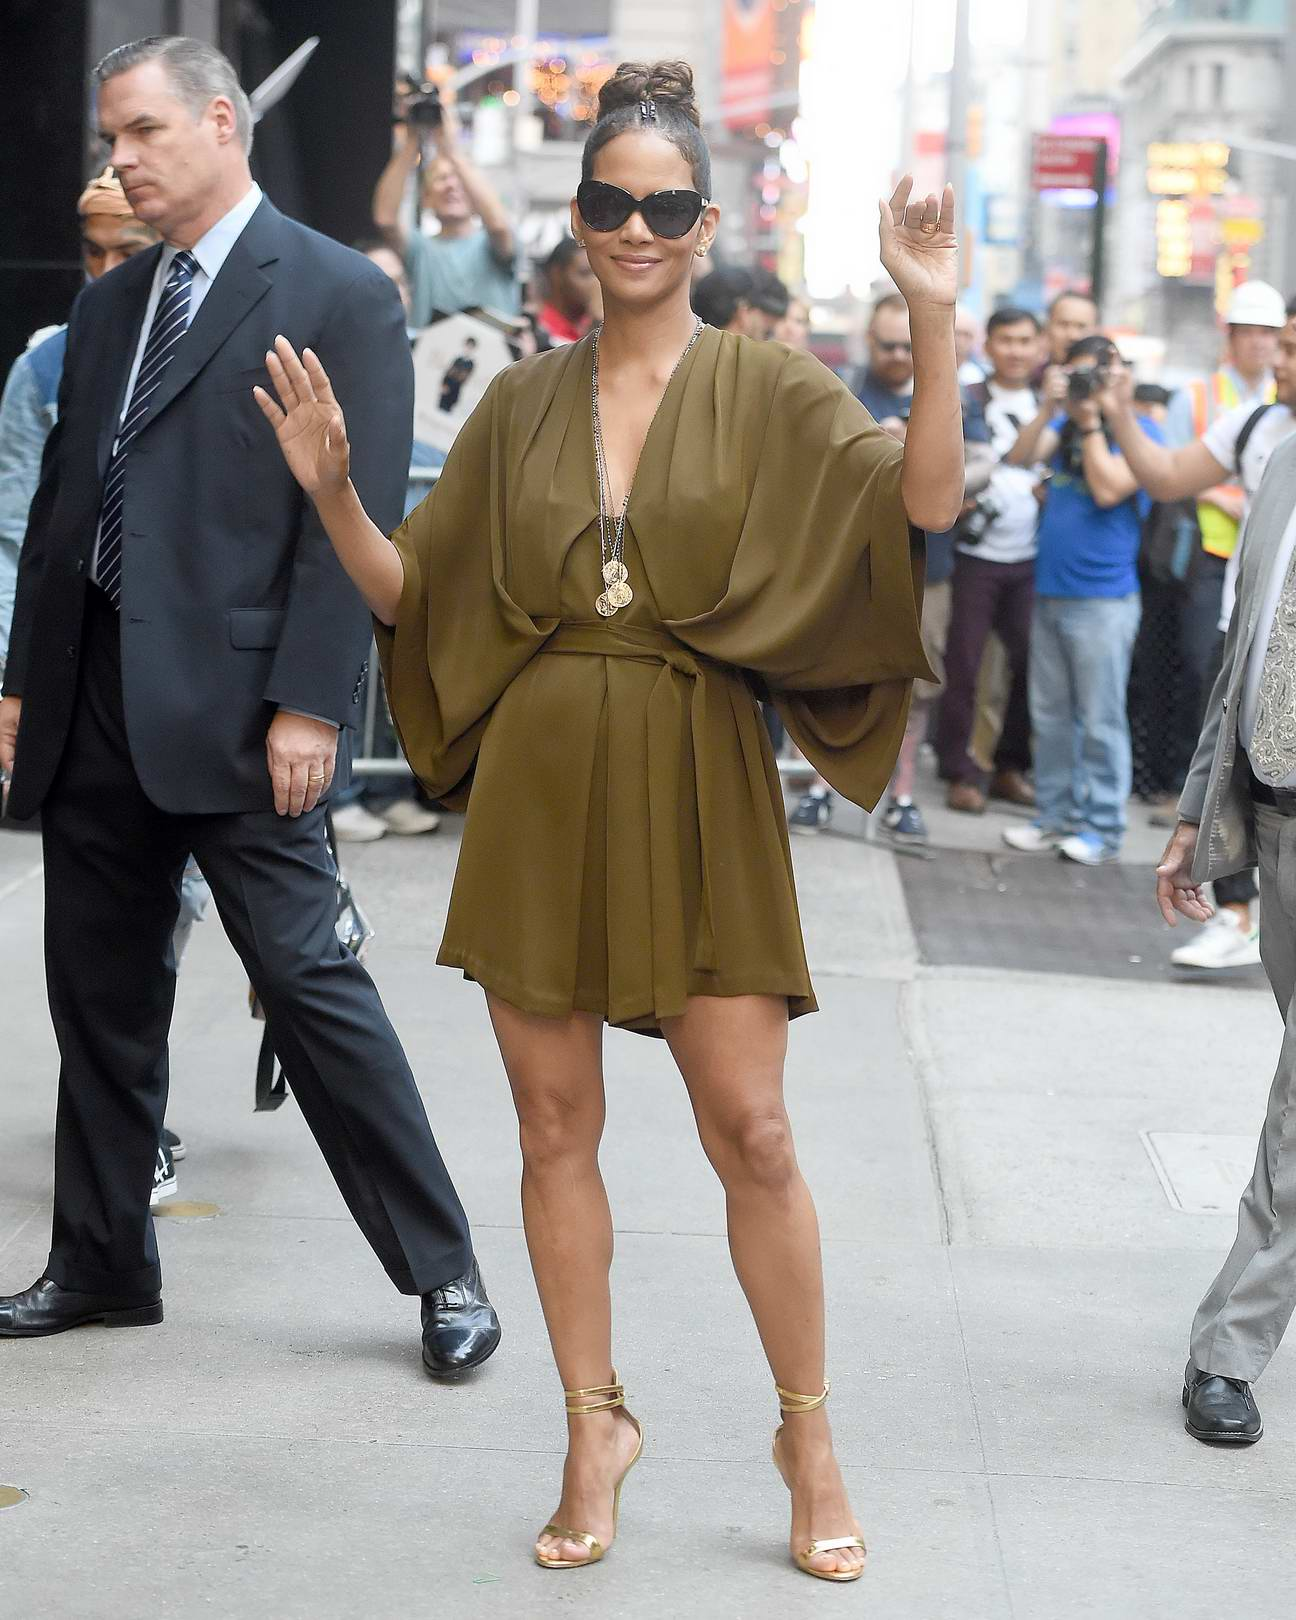 Halle Berry wearing a Green Dress at Good Morning America studios in New York